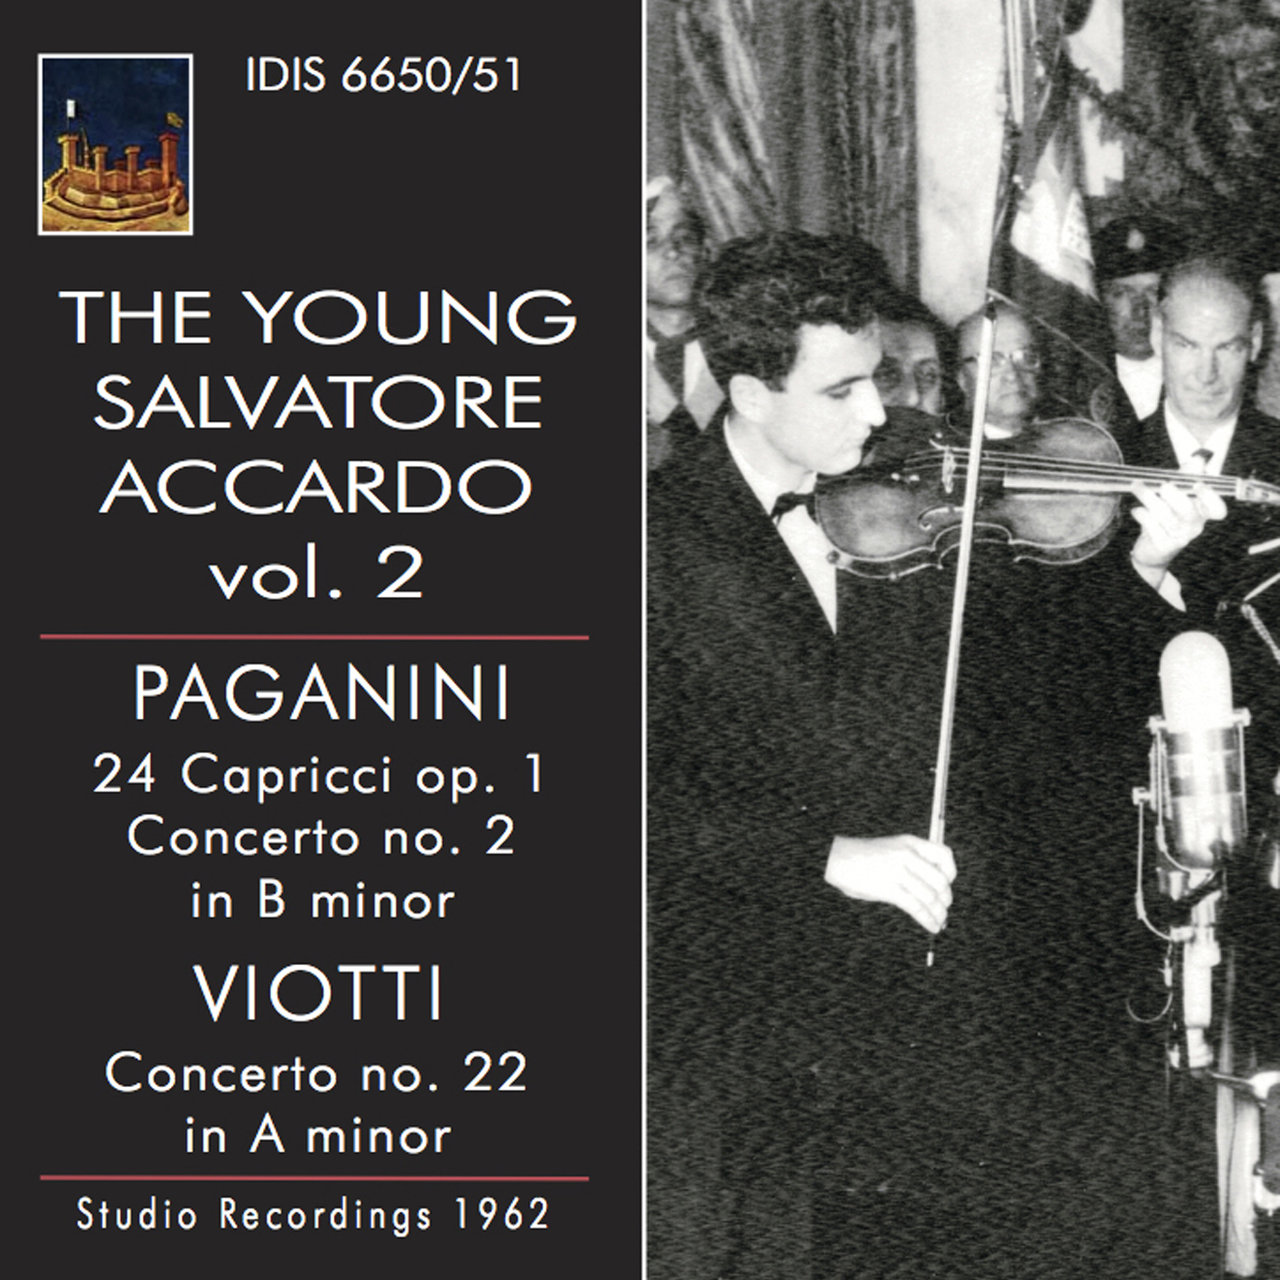 The Young Salvatore Accardo, Vol. 2 (1962)